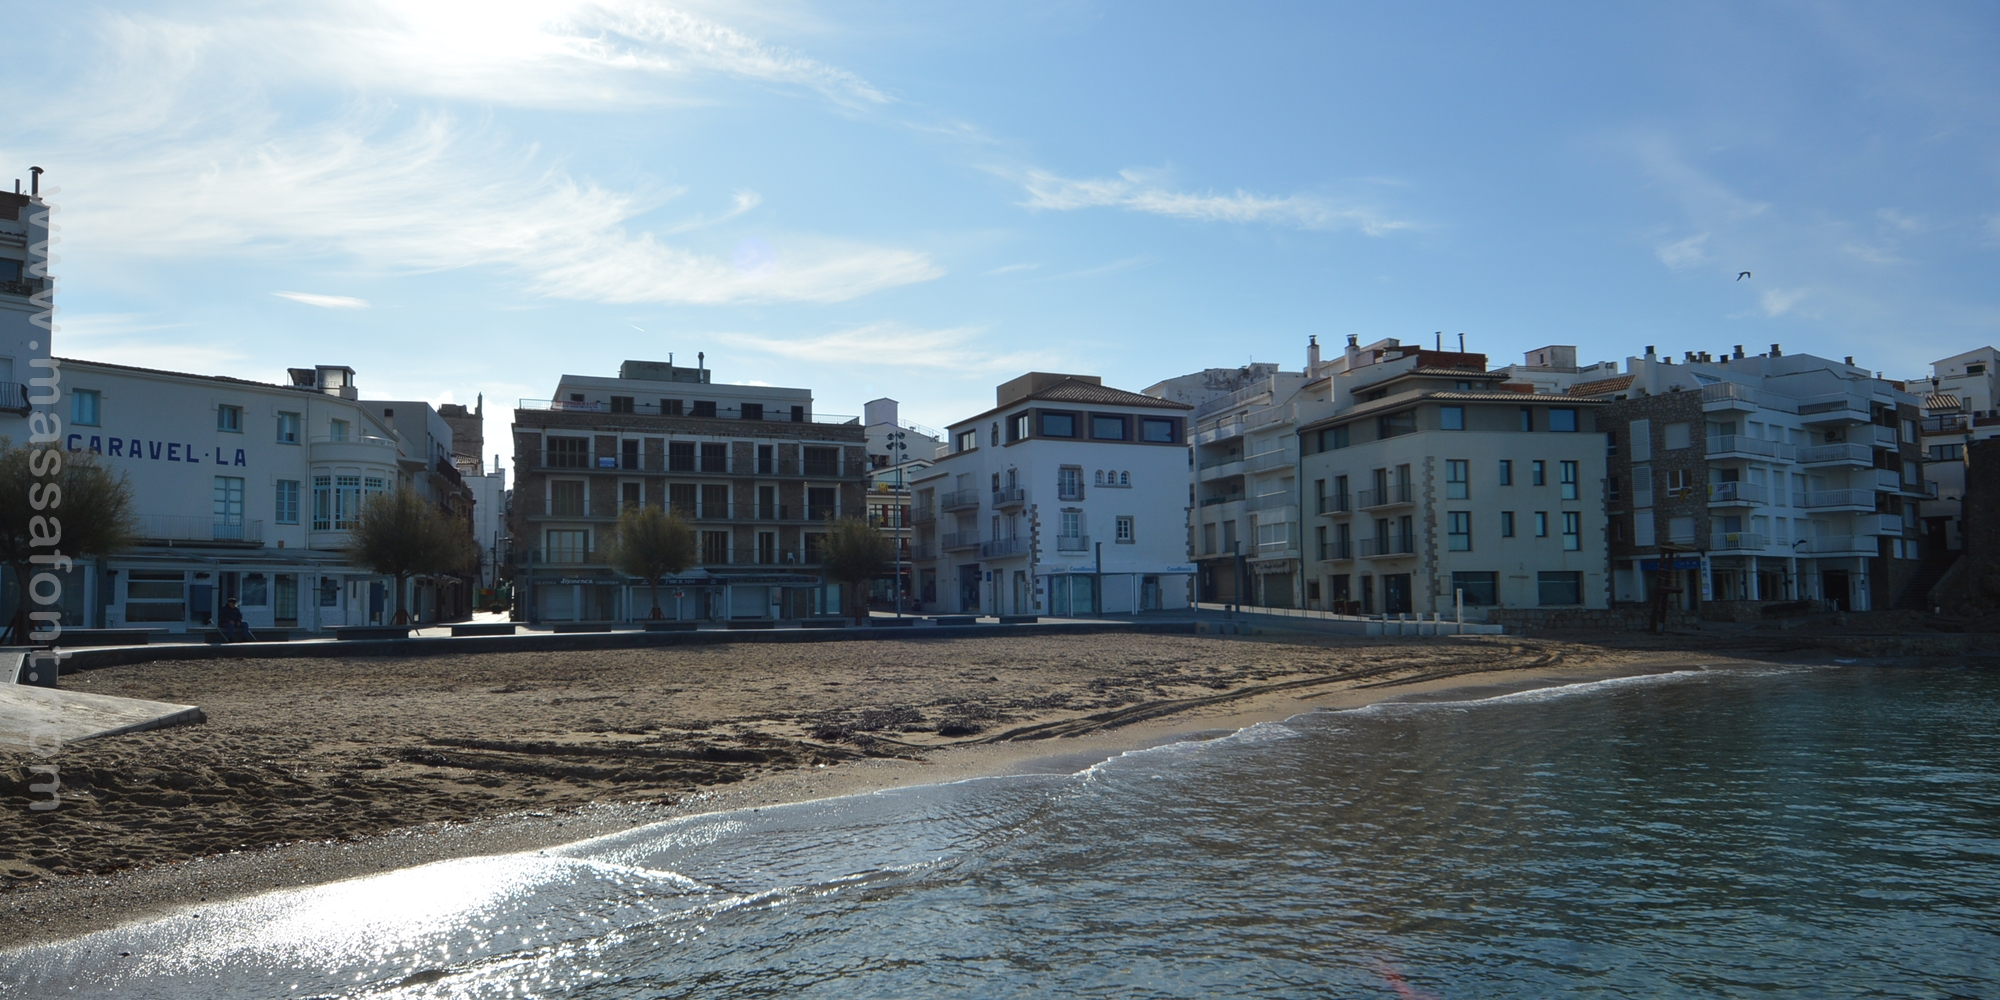 APPARTEMENT SUR LA PLAGE AU CENTRE DU VILLAGE